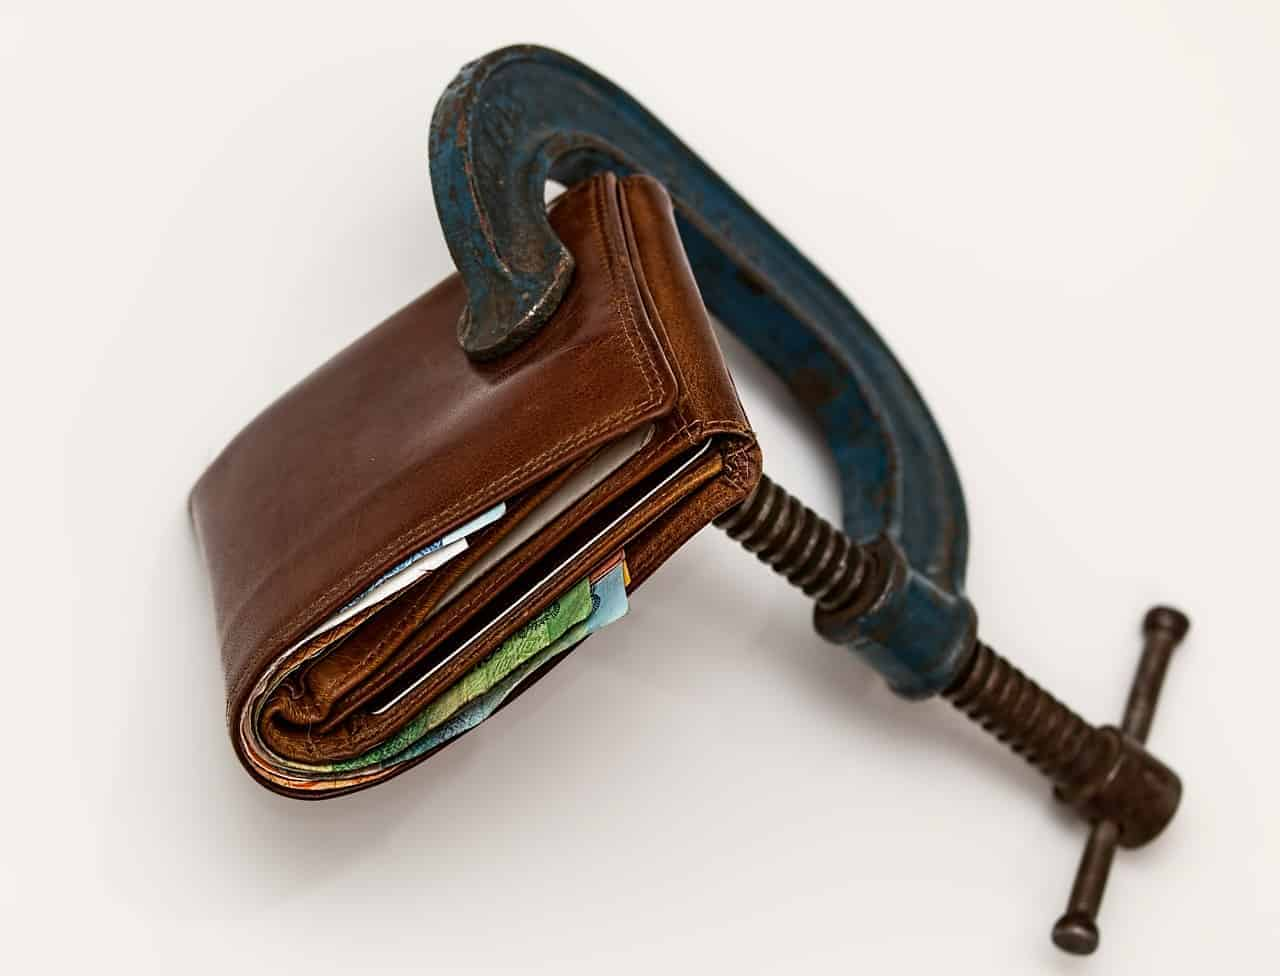 Wallet being clamped by a G clamp